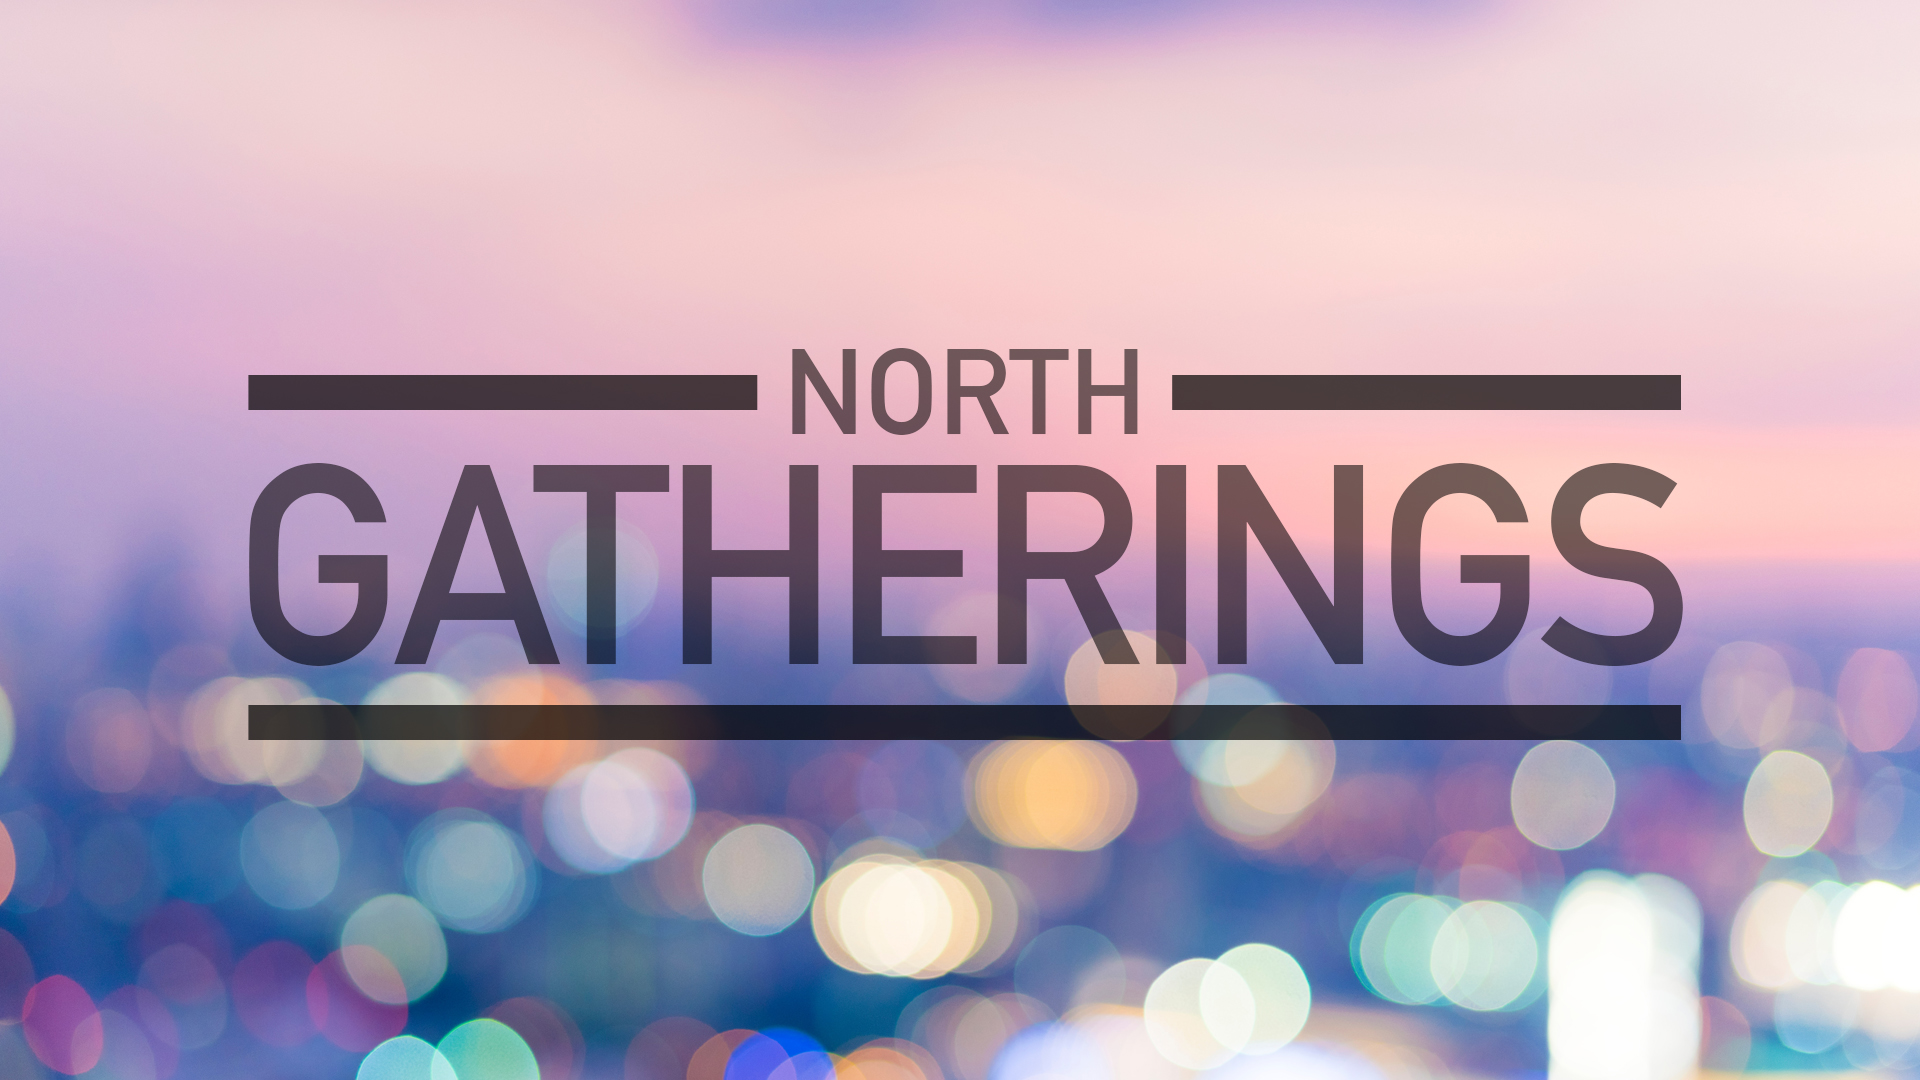 North Gatherings image